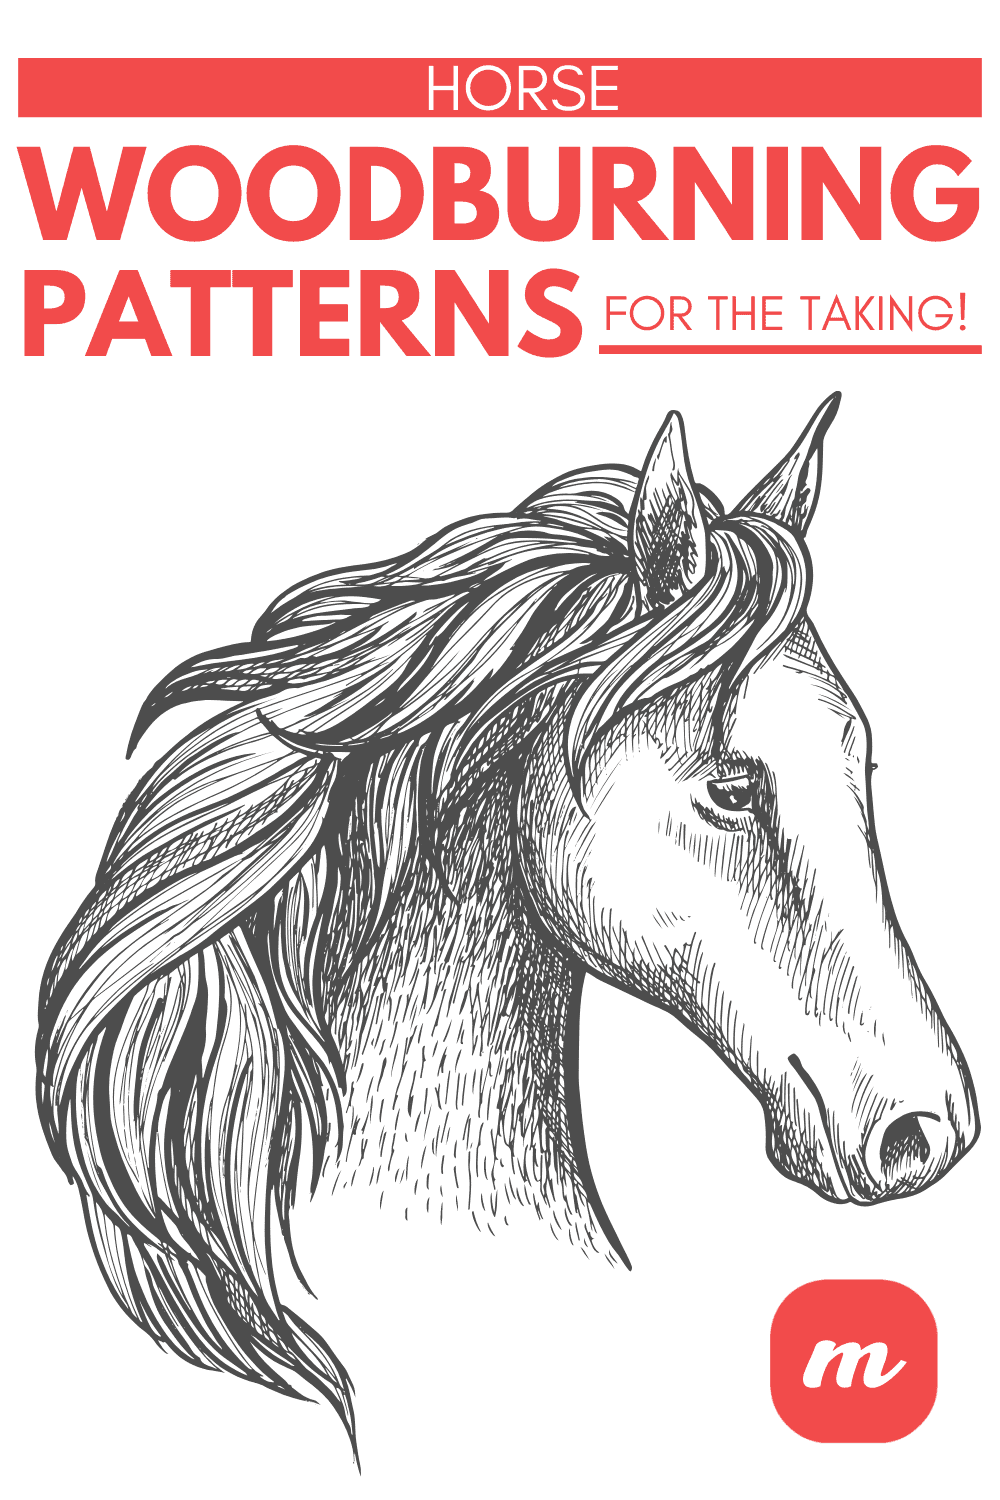 Horse Woodburning Patterns For The Taking! in 2020 | Wood ...